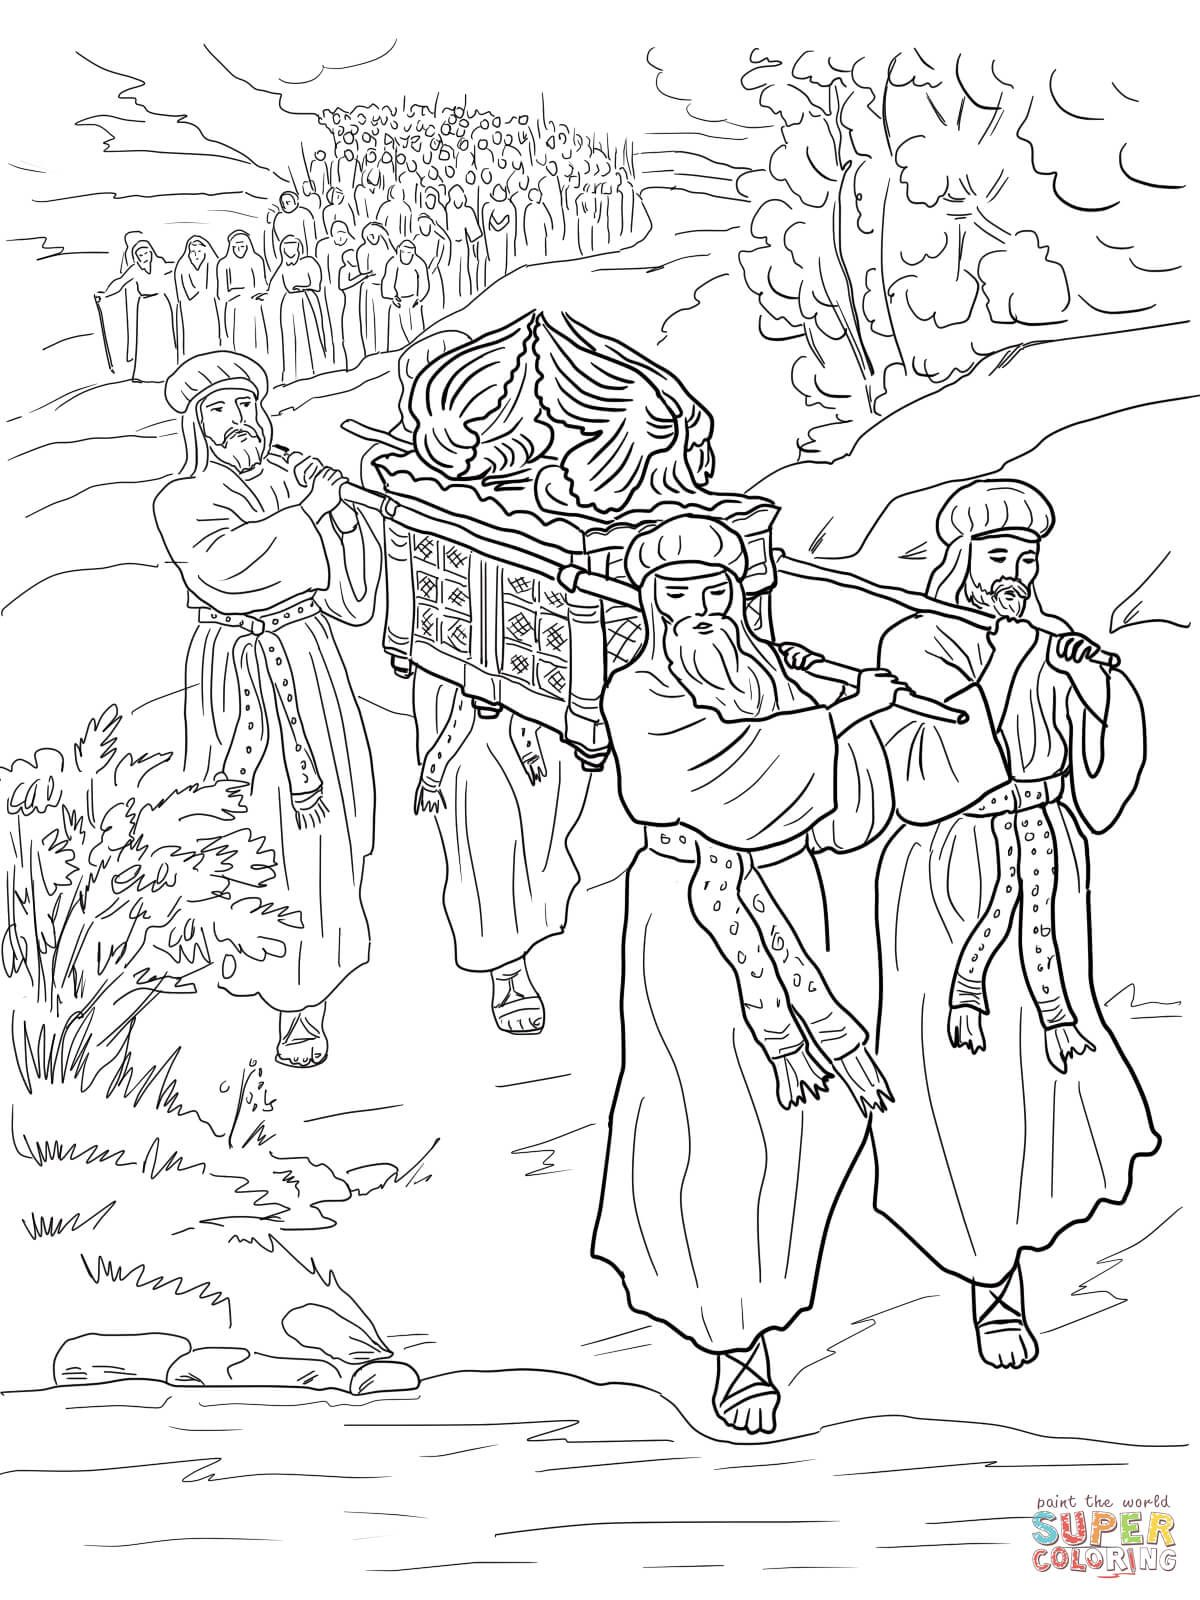 river coloring pages printable crossing jordan river coloring page sundayschoolist printable river pages coloring